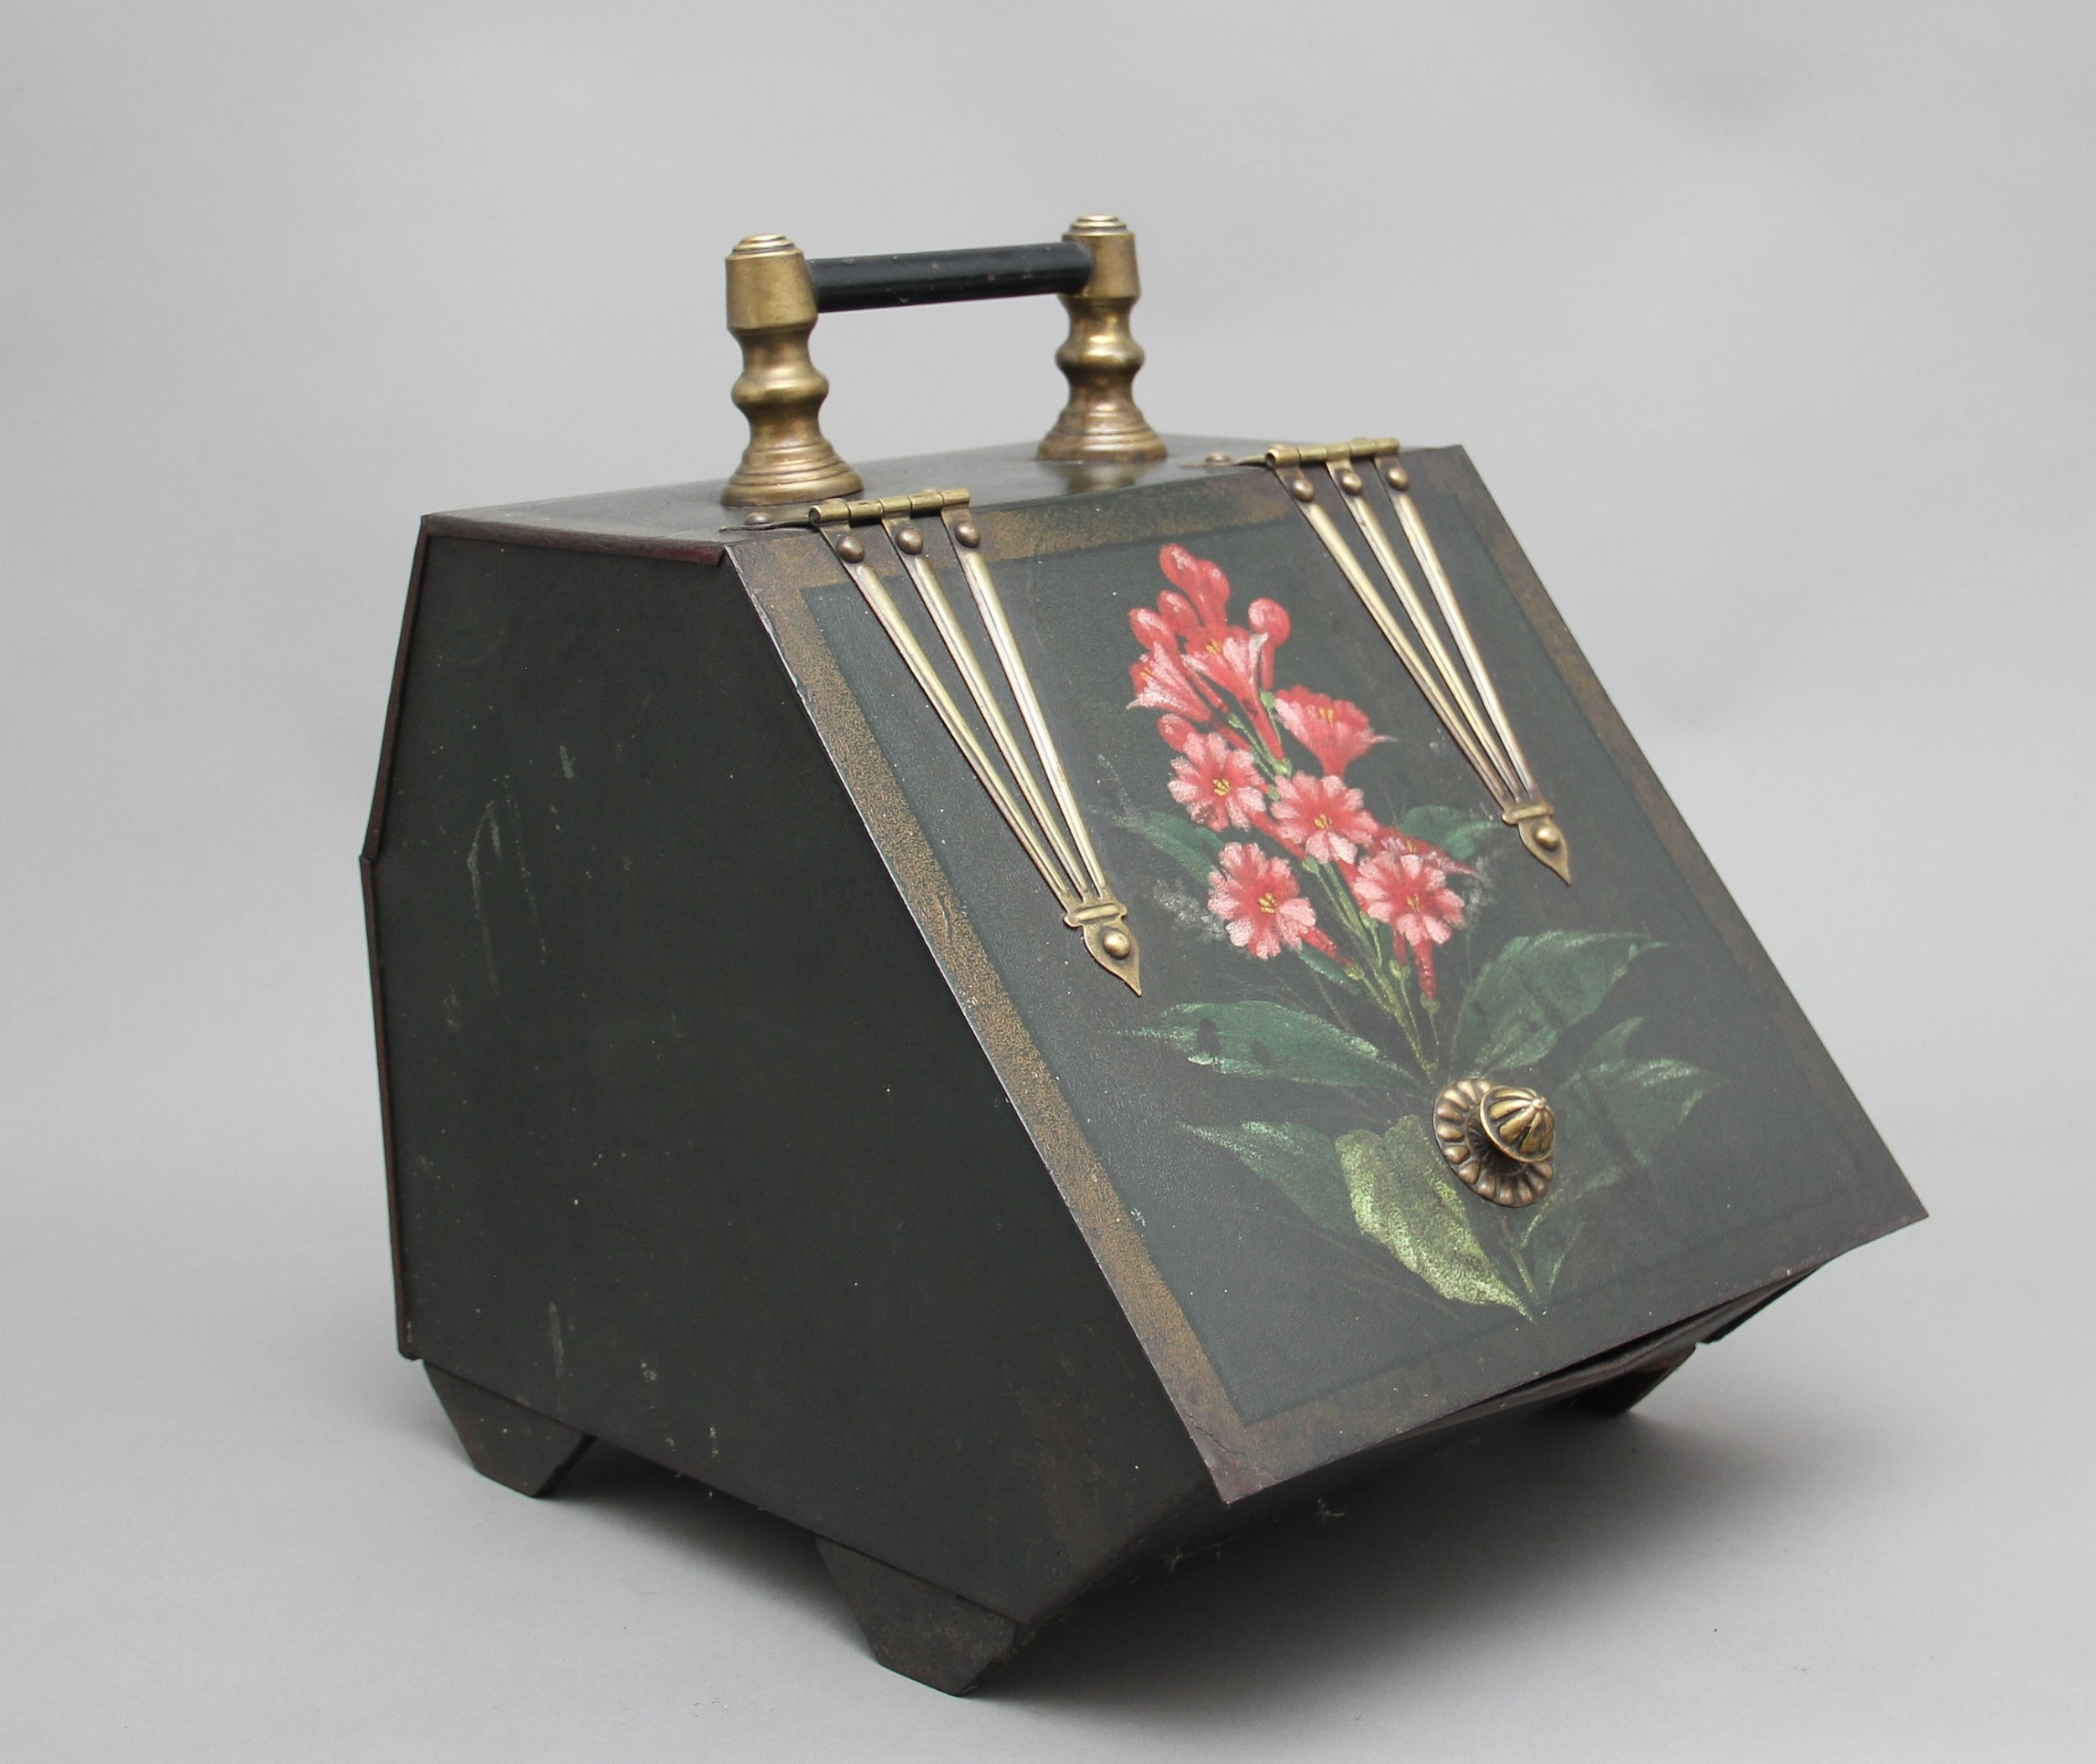 19th century metal and painted coal box